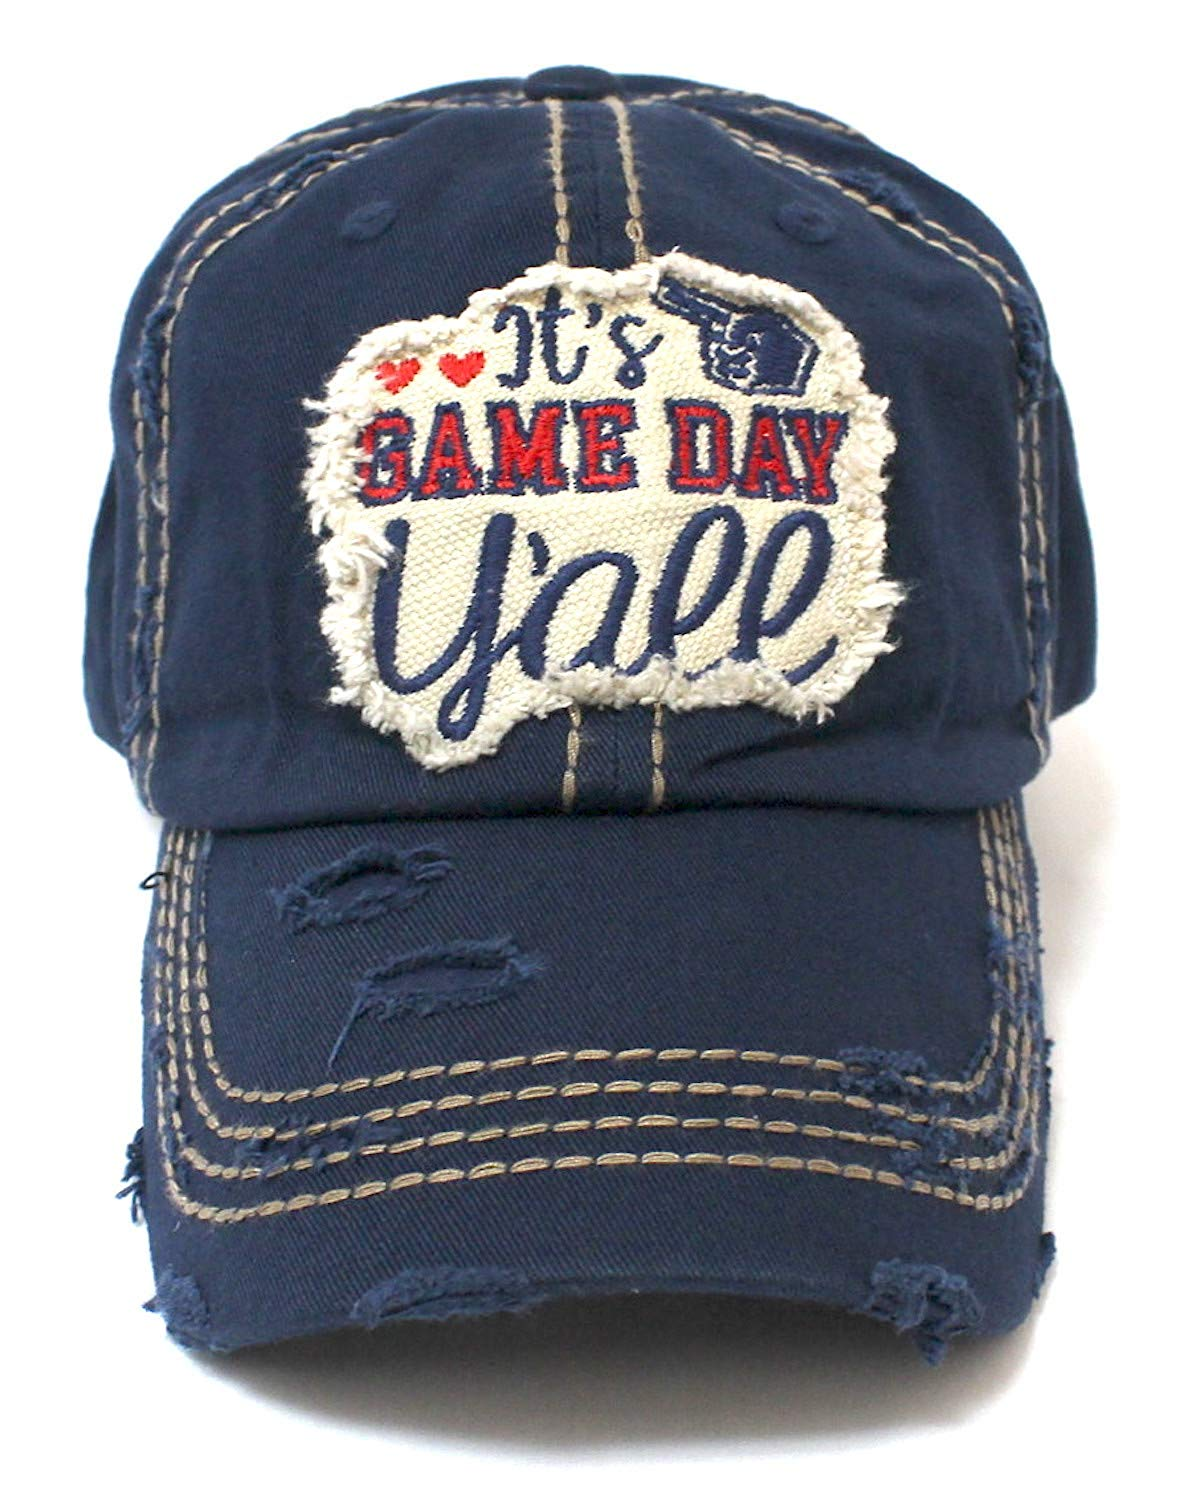 Navy Women's It's Game Day Y'all! Patch Embroidery Hat - Caps 'N Vintage